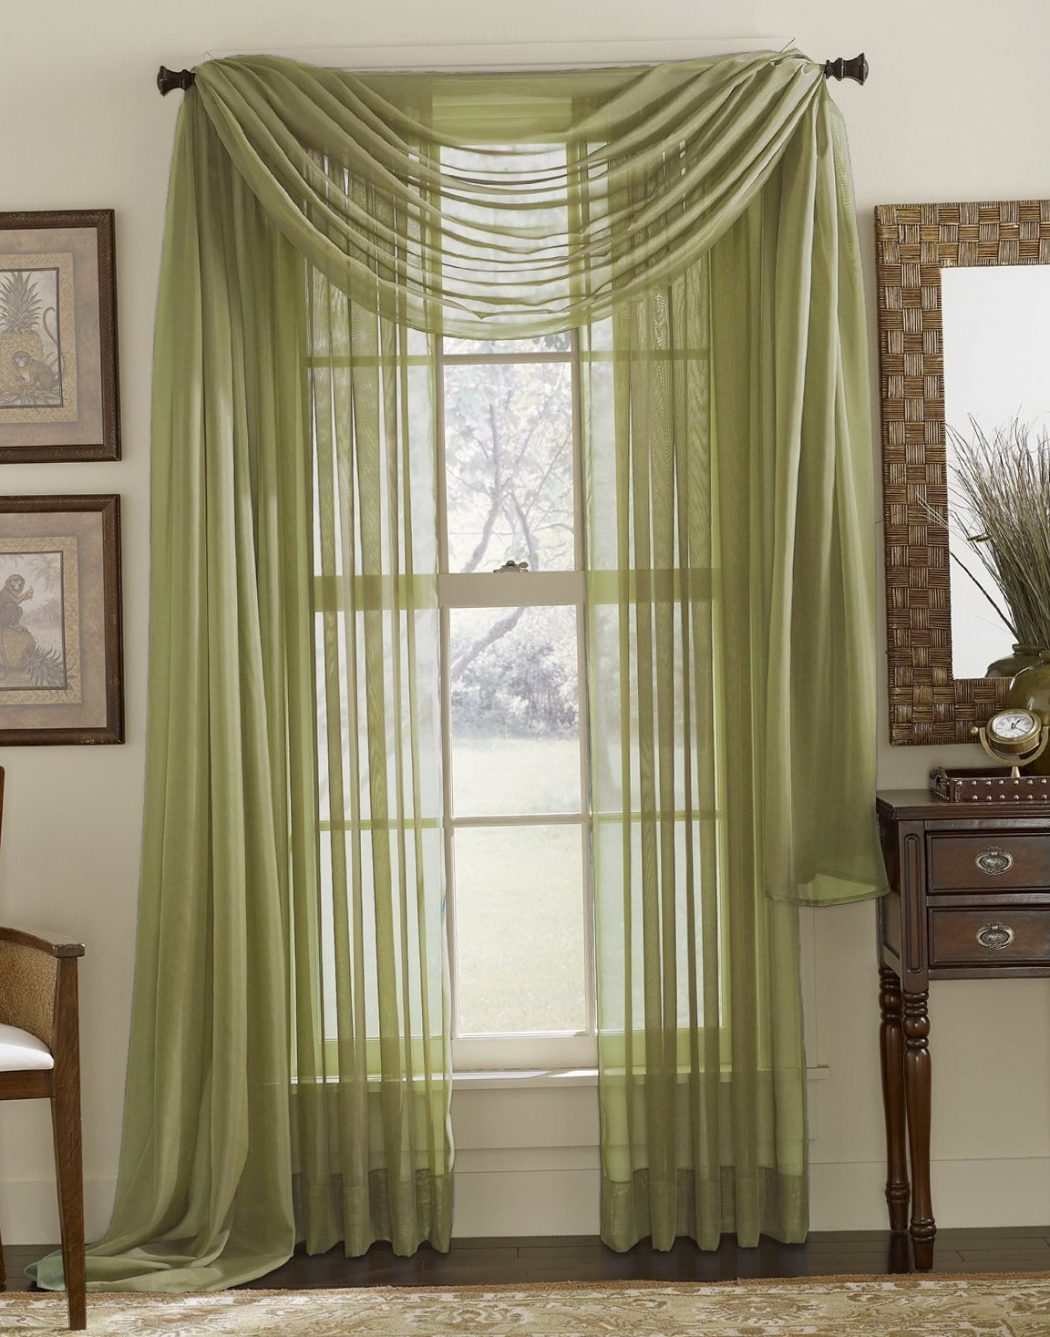 Lovely-Green-Sheer-Curtains-97-In-with-Green-Sheer-Curtains 20+ Hottest Curtain Design Ideas for 2021